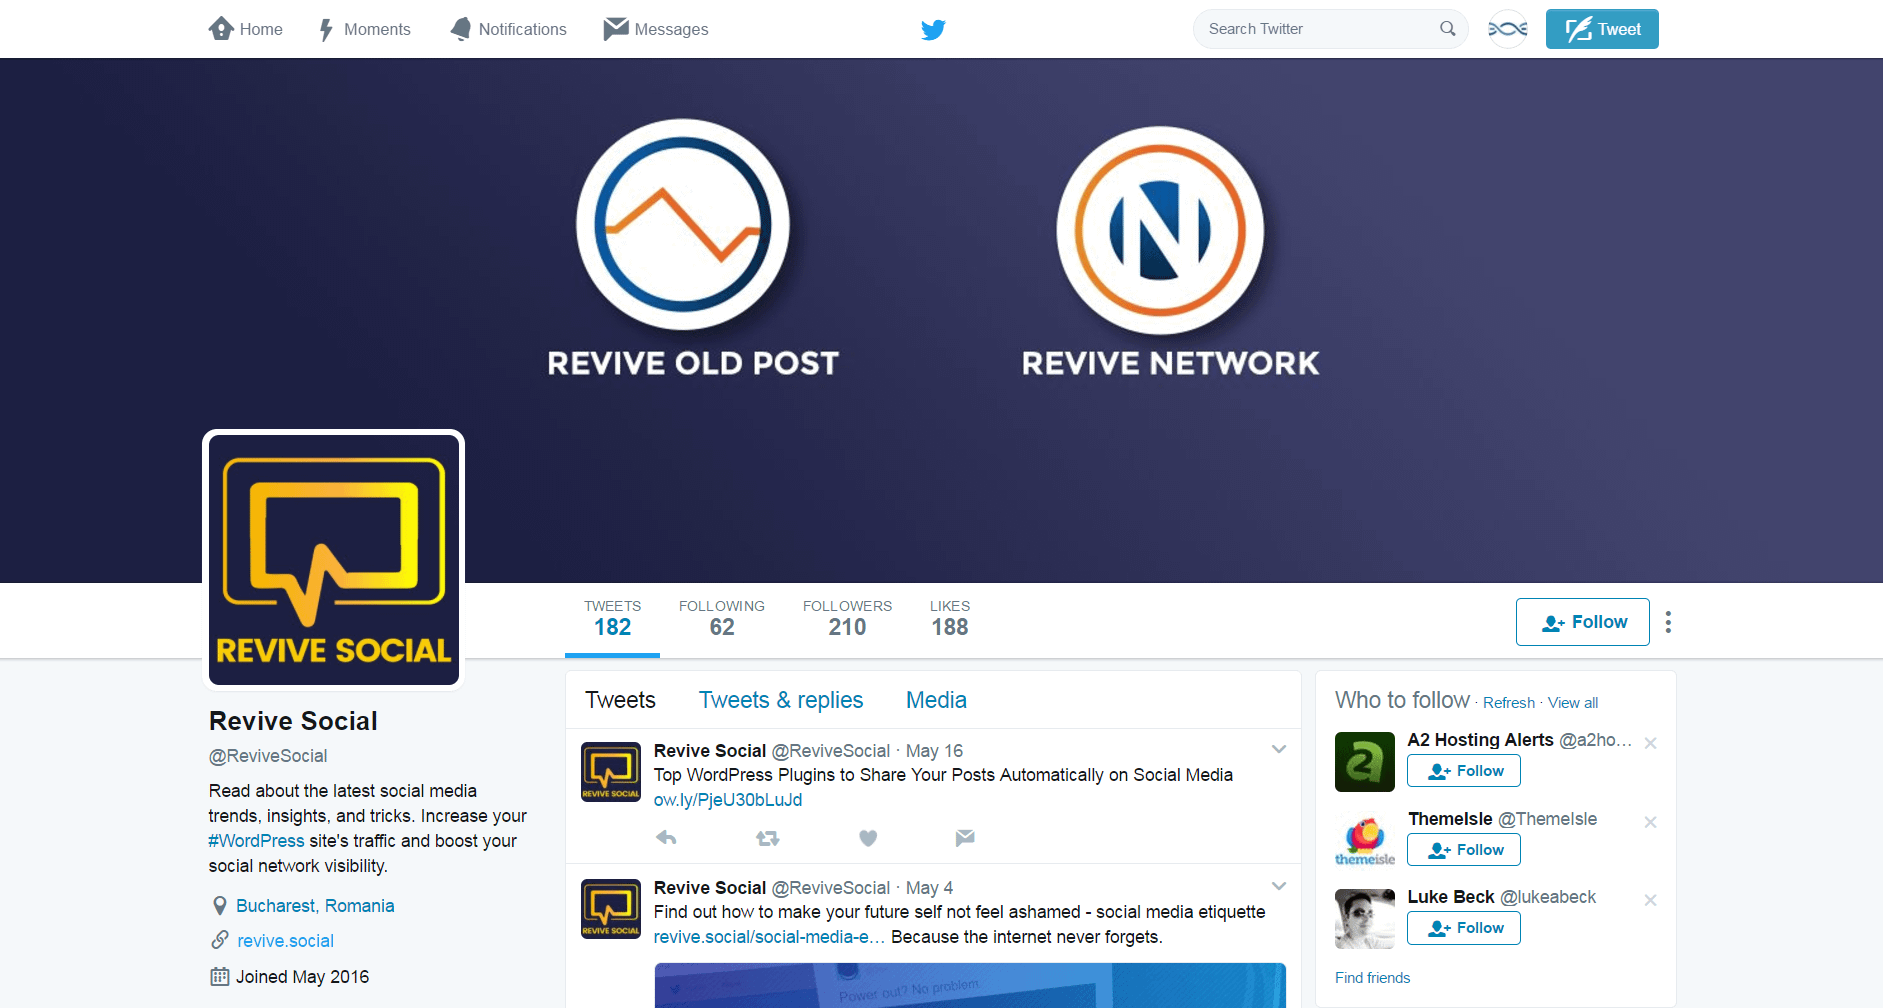 The Revive.Social Twitter feed.